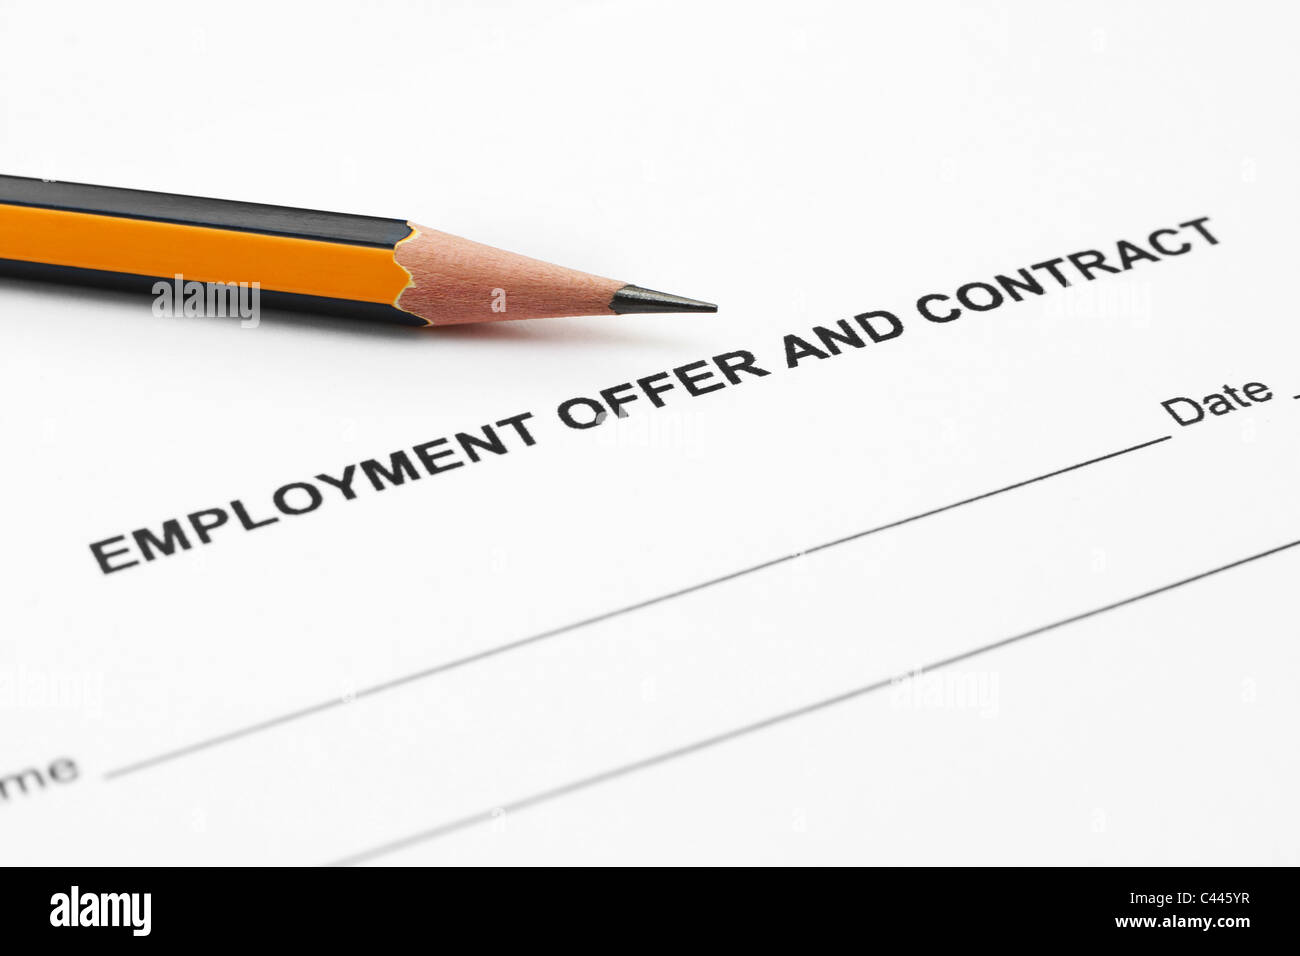 Employment offer and contract - Stock Image